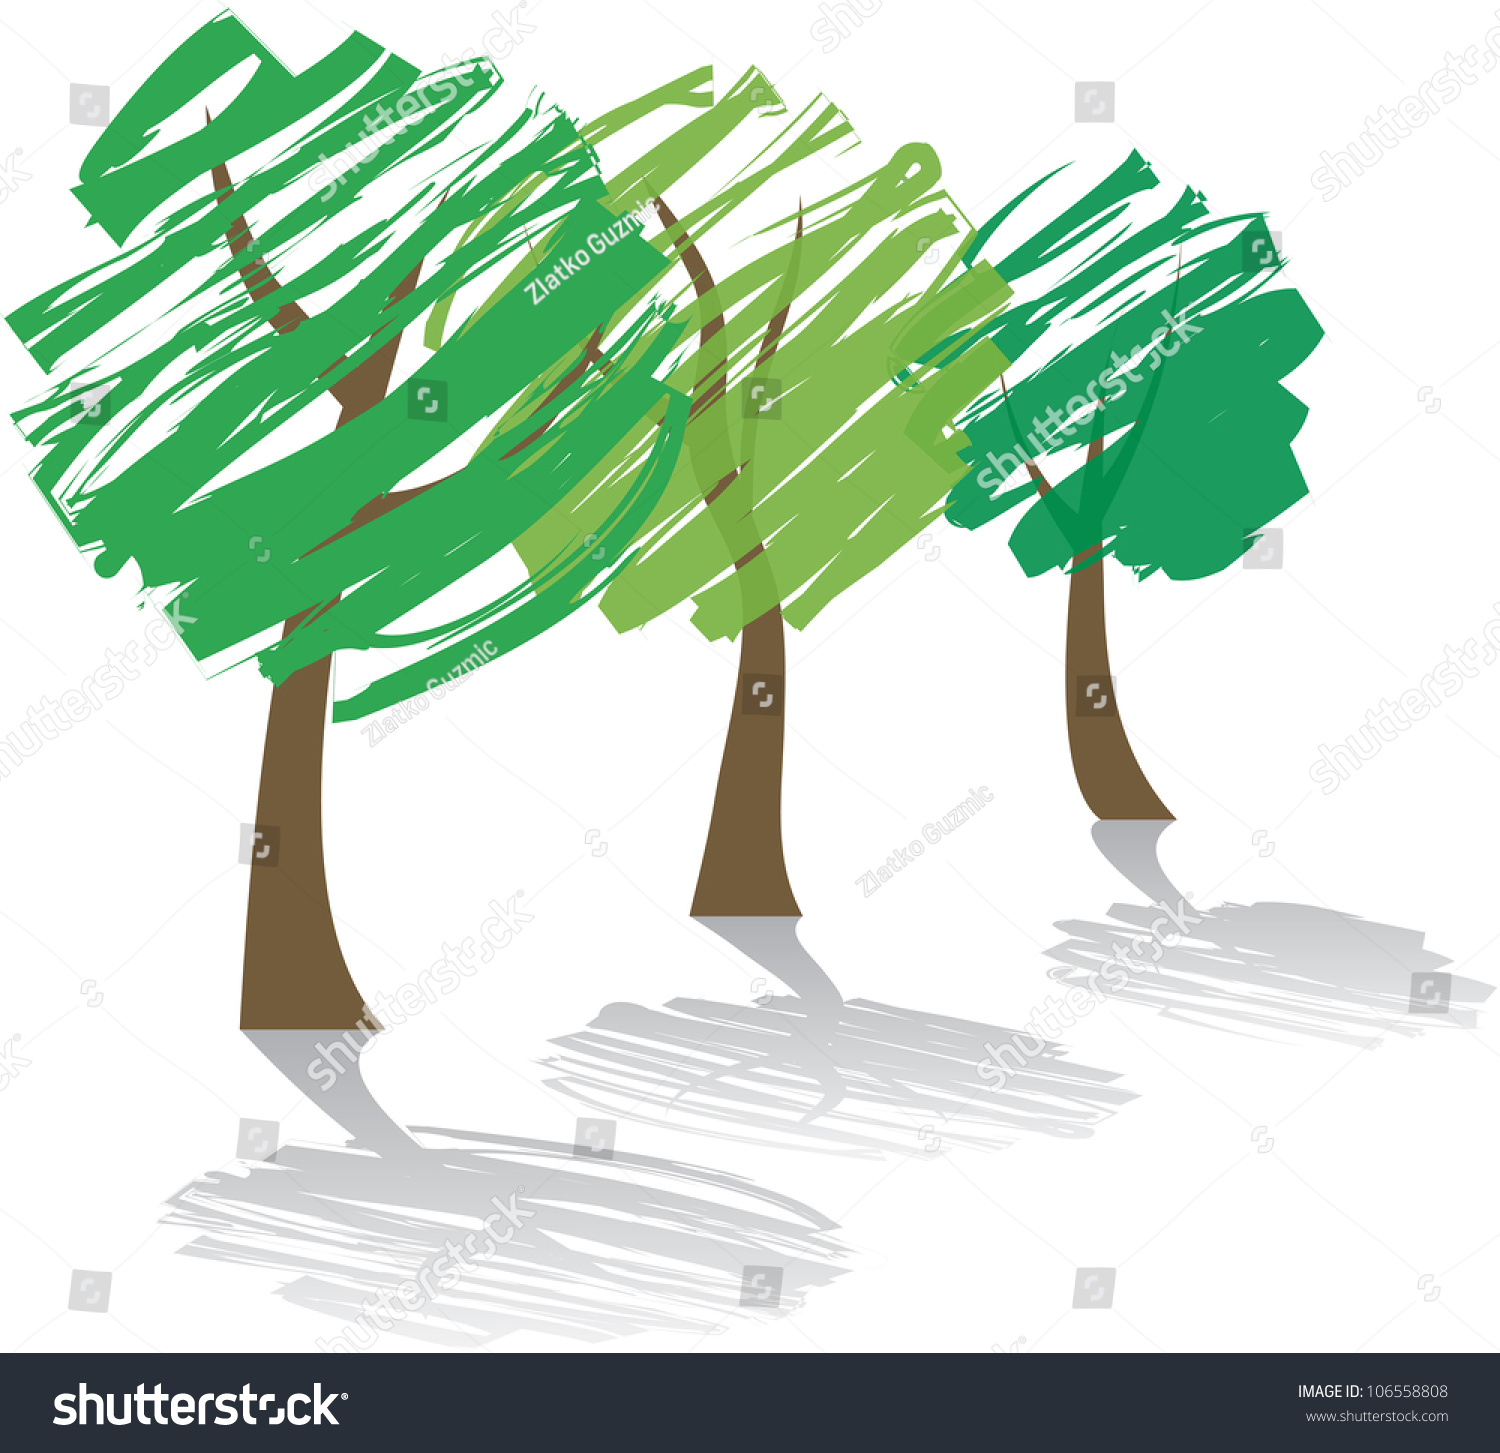 Three Abstract Trees Shadow Stock Vector 106558808 - Shutterstock